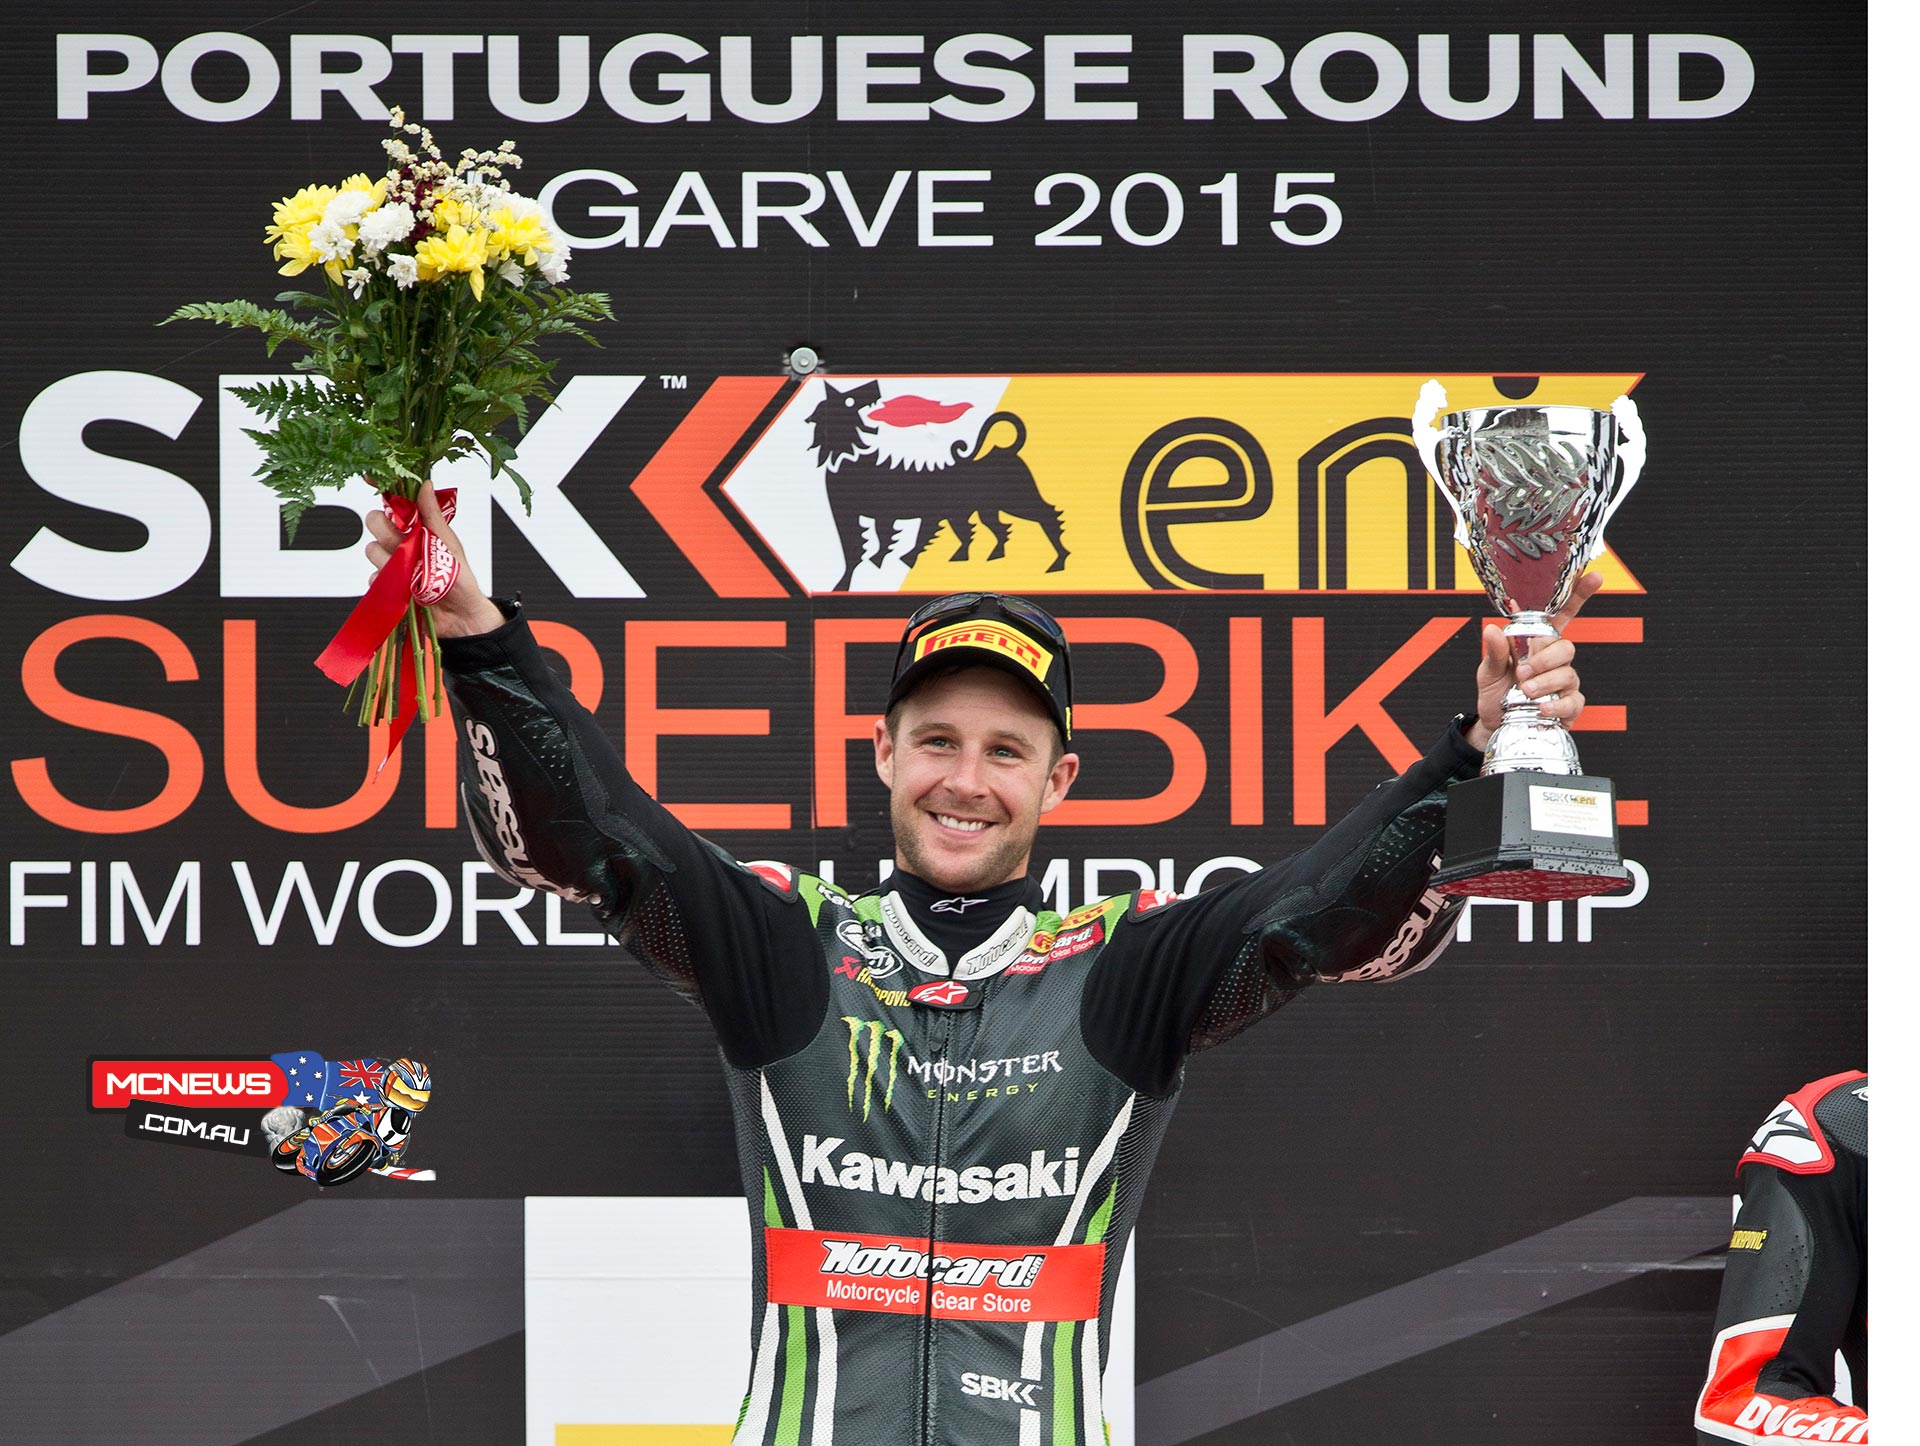 Jonathan Rea continues on his 2015 charge, taking the Portimao world superbike double, and bringing his haul to an impressive ten wins from 14 races for the season.